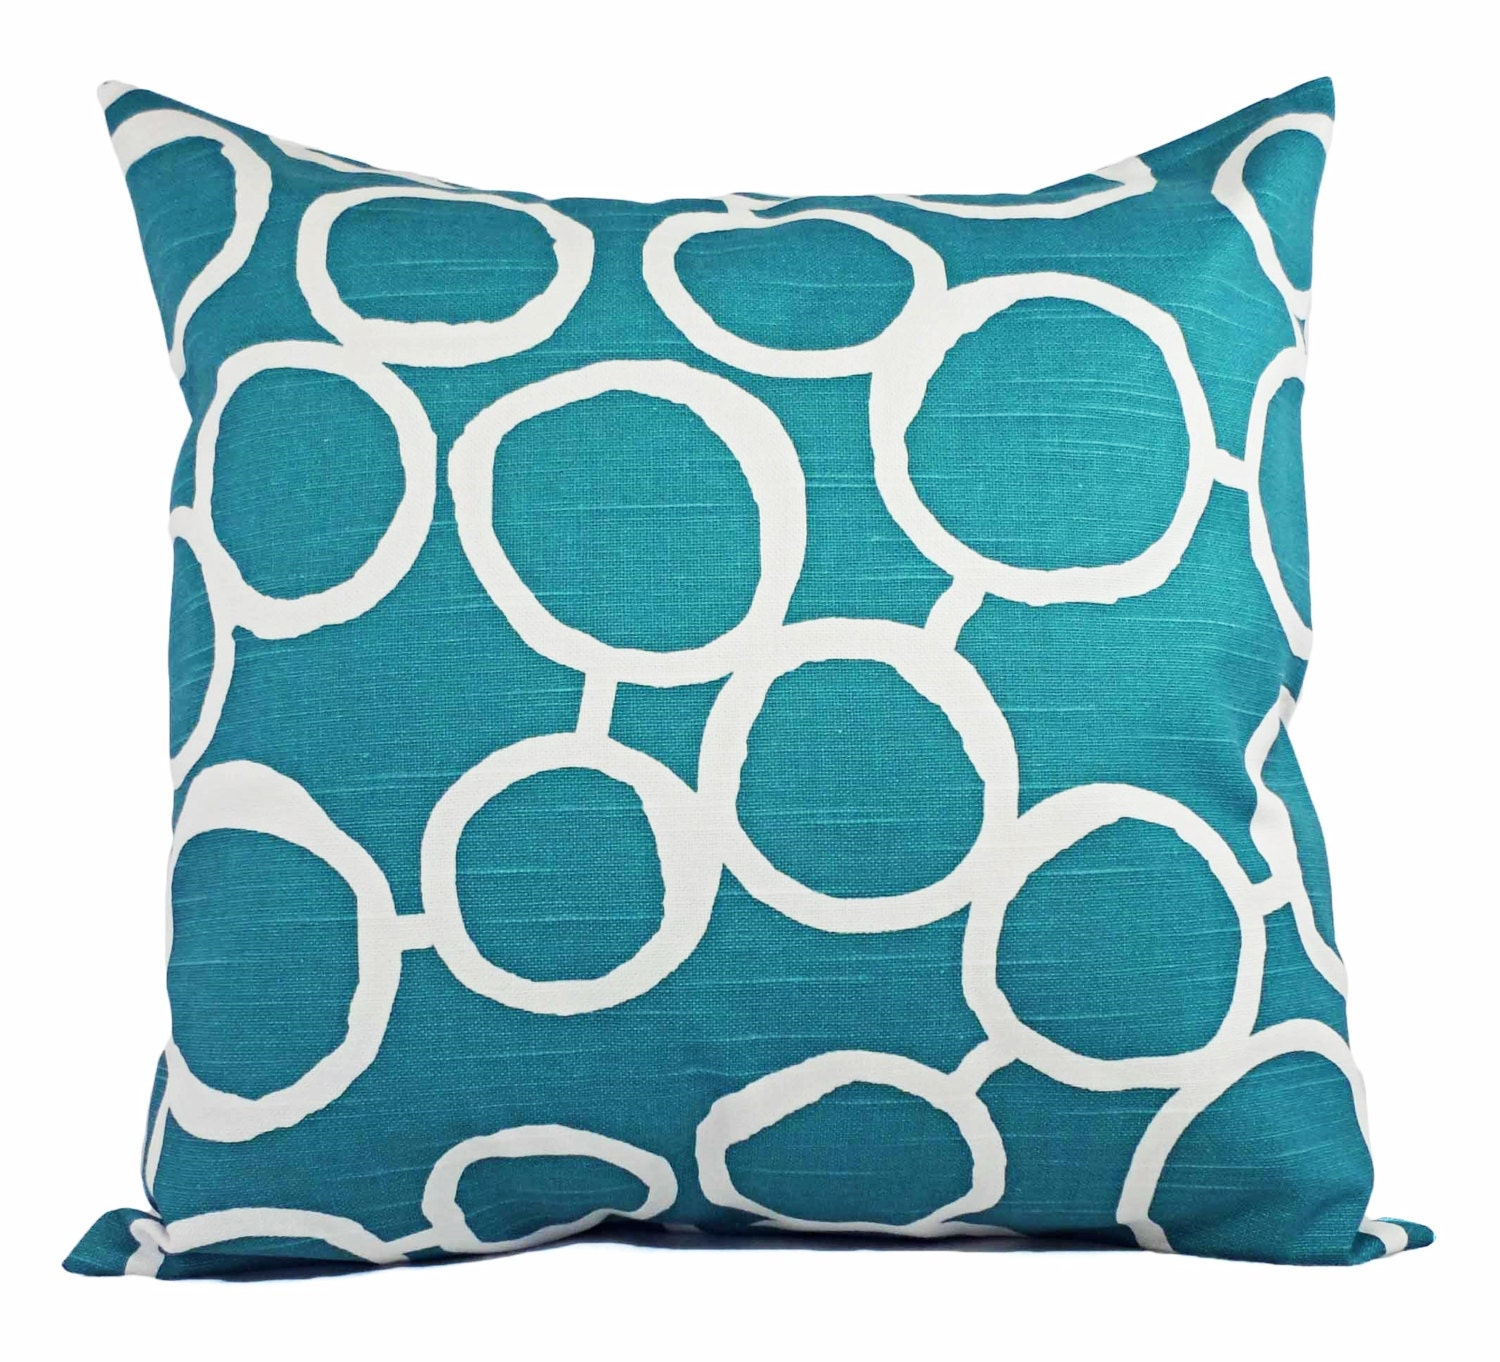 Turquoise Throw Pillows Covers : Turquoise Decorative Pillow Covers Two by CastawayCoveDecor